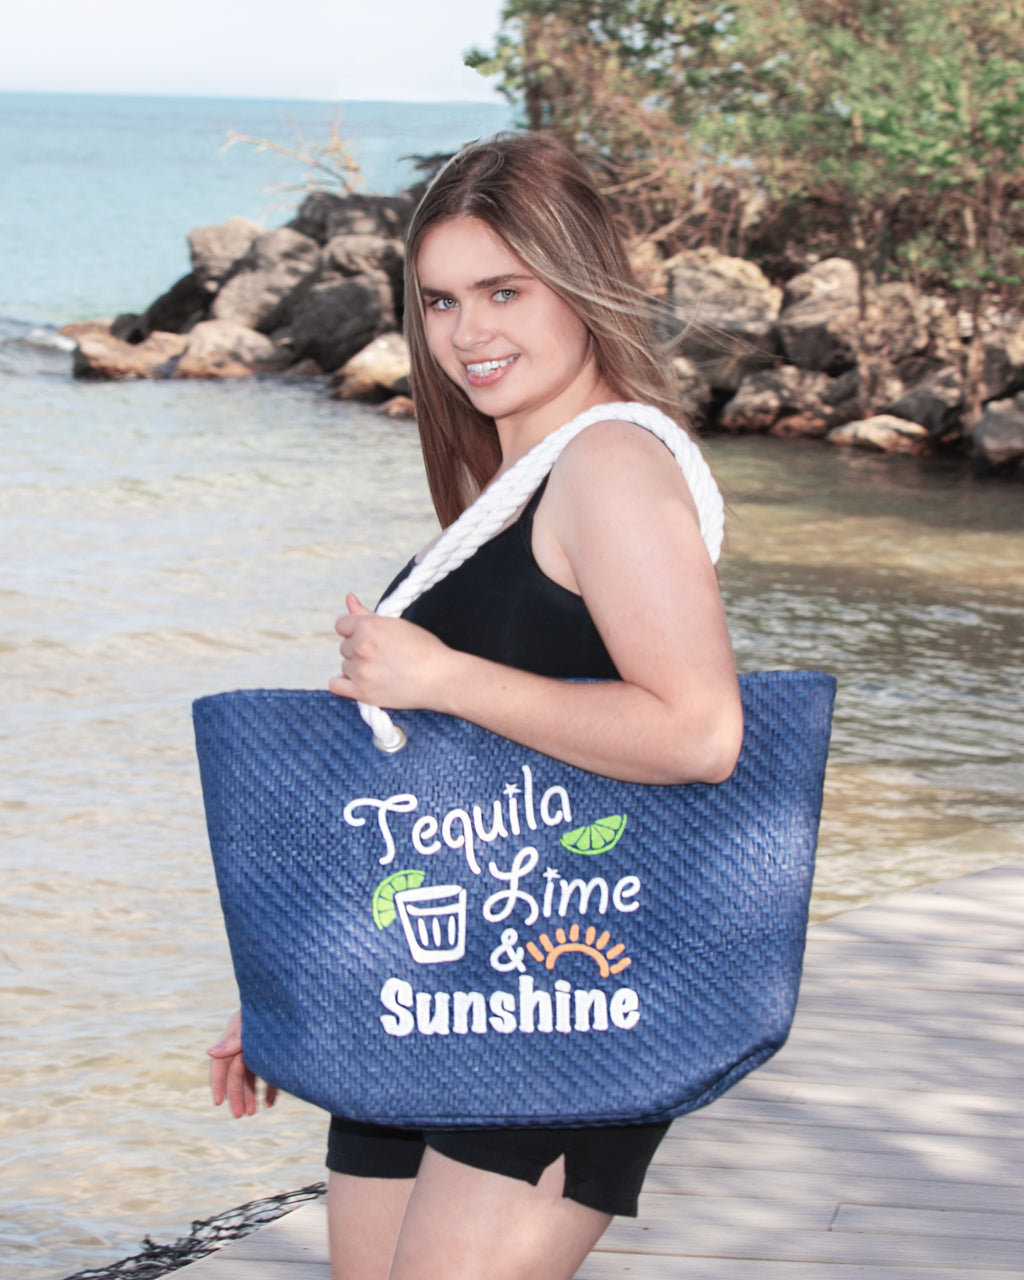 Beach Tote - Tequila, Lime, Sunshine